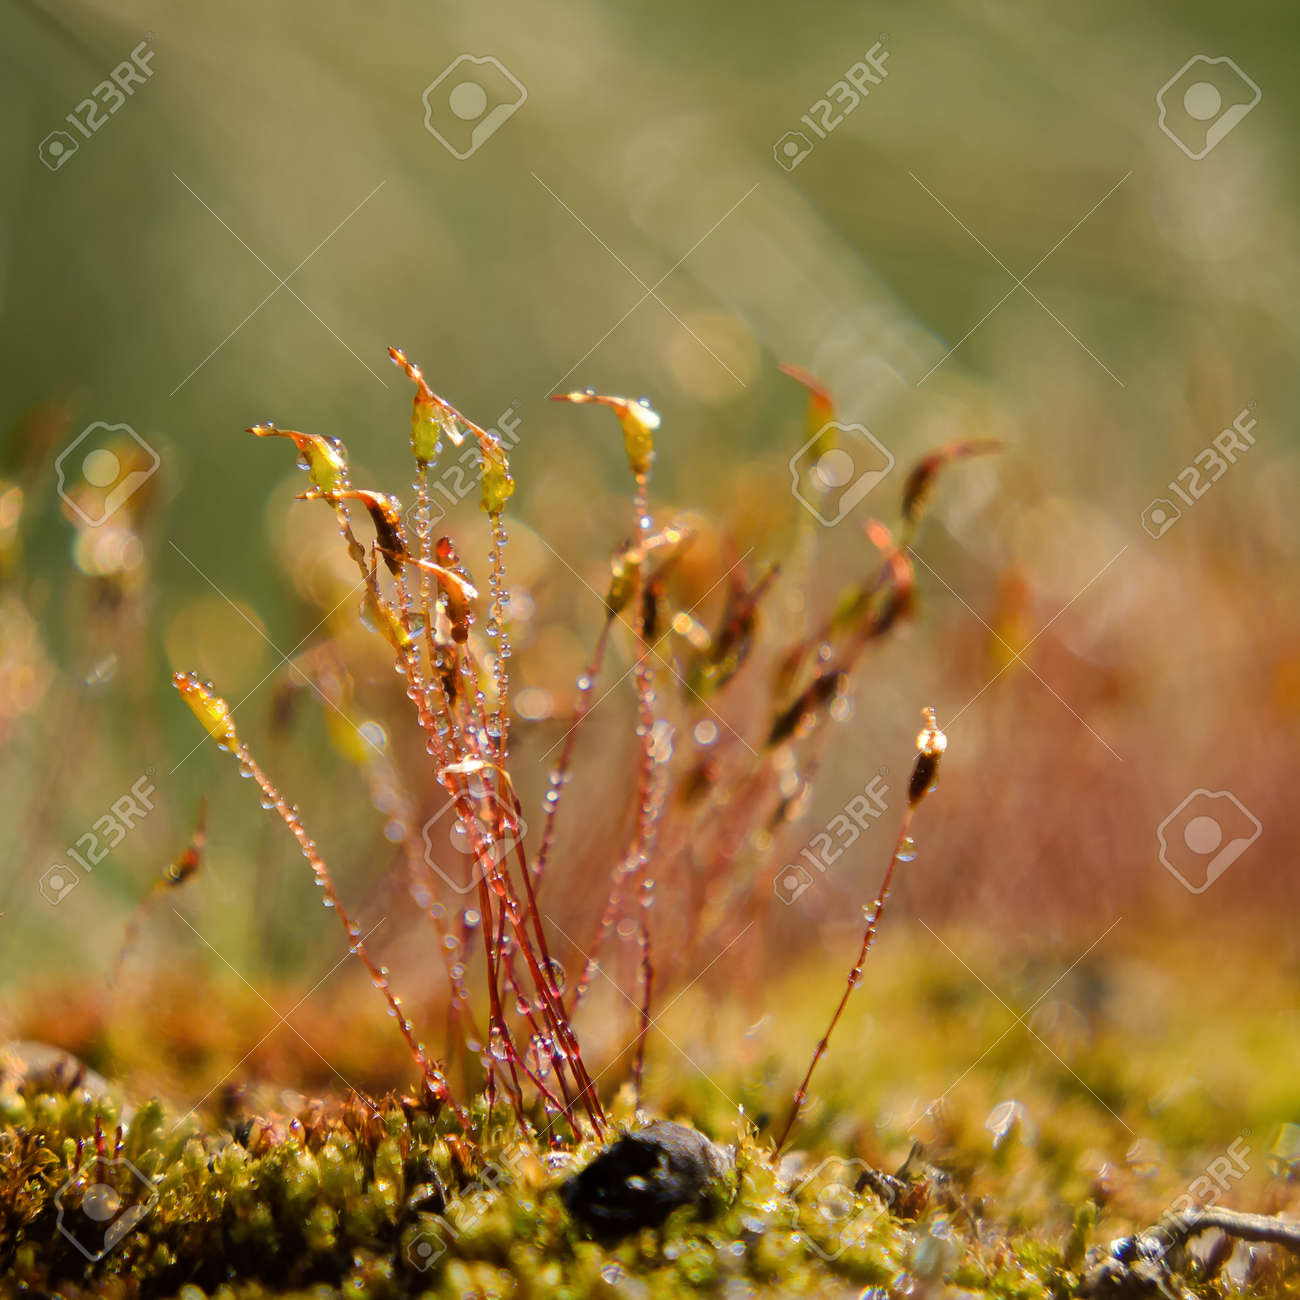 BLOOMING MOSS - A forest glade in the rays of the sun - 168070522